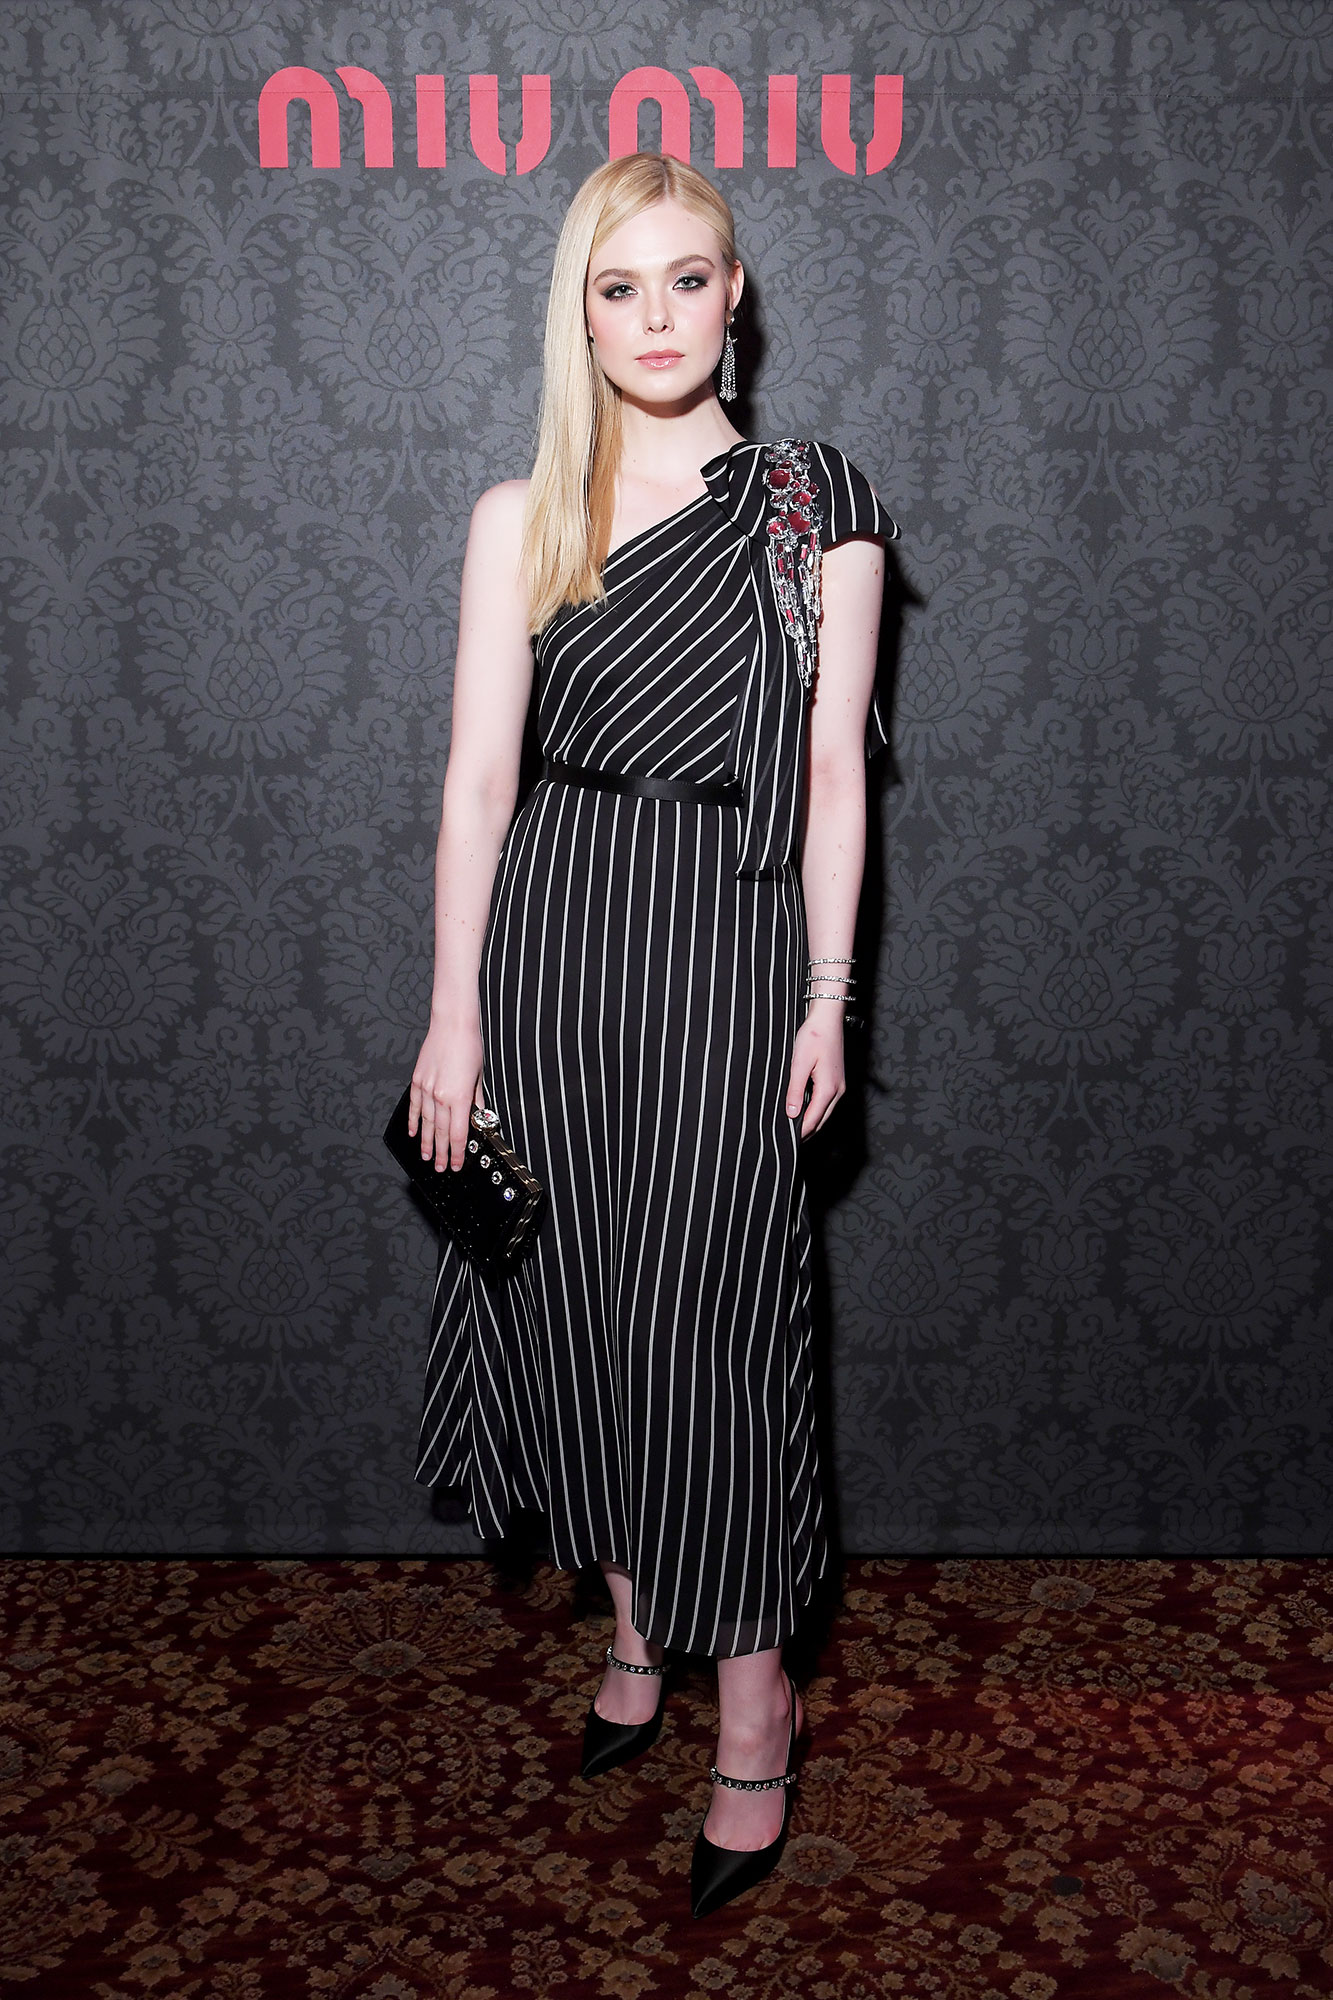 Elle Fanning Stars Closed Out Paris Fashion Week on a Sartorial High Note - The Miu Miu brand ambassador was cute in an asymmetrical striped frock at the brand's party on Tuesday, March 5.